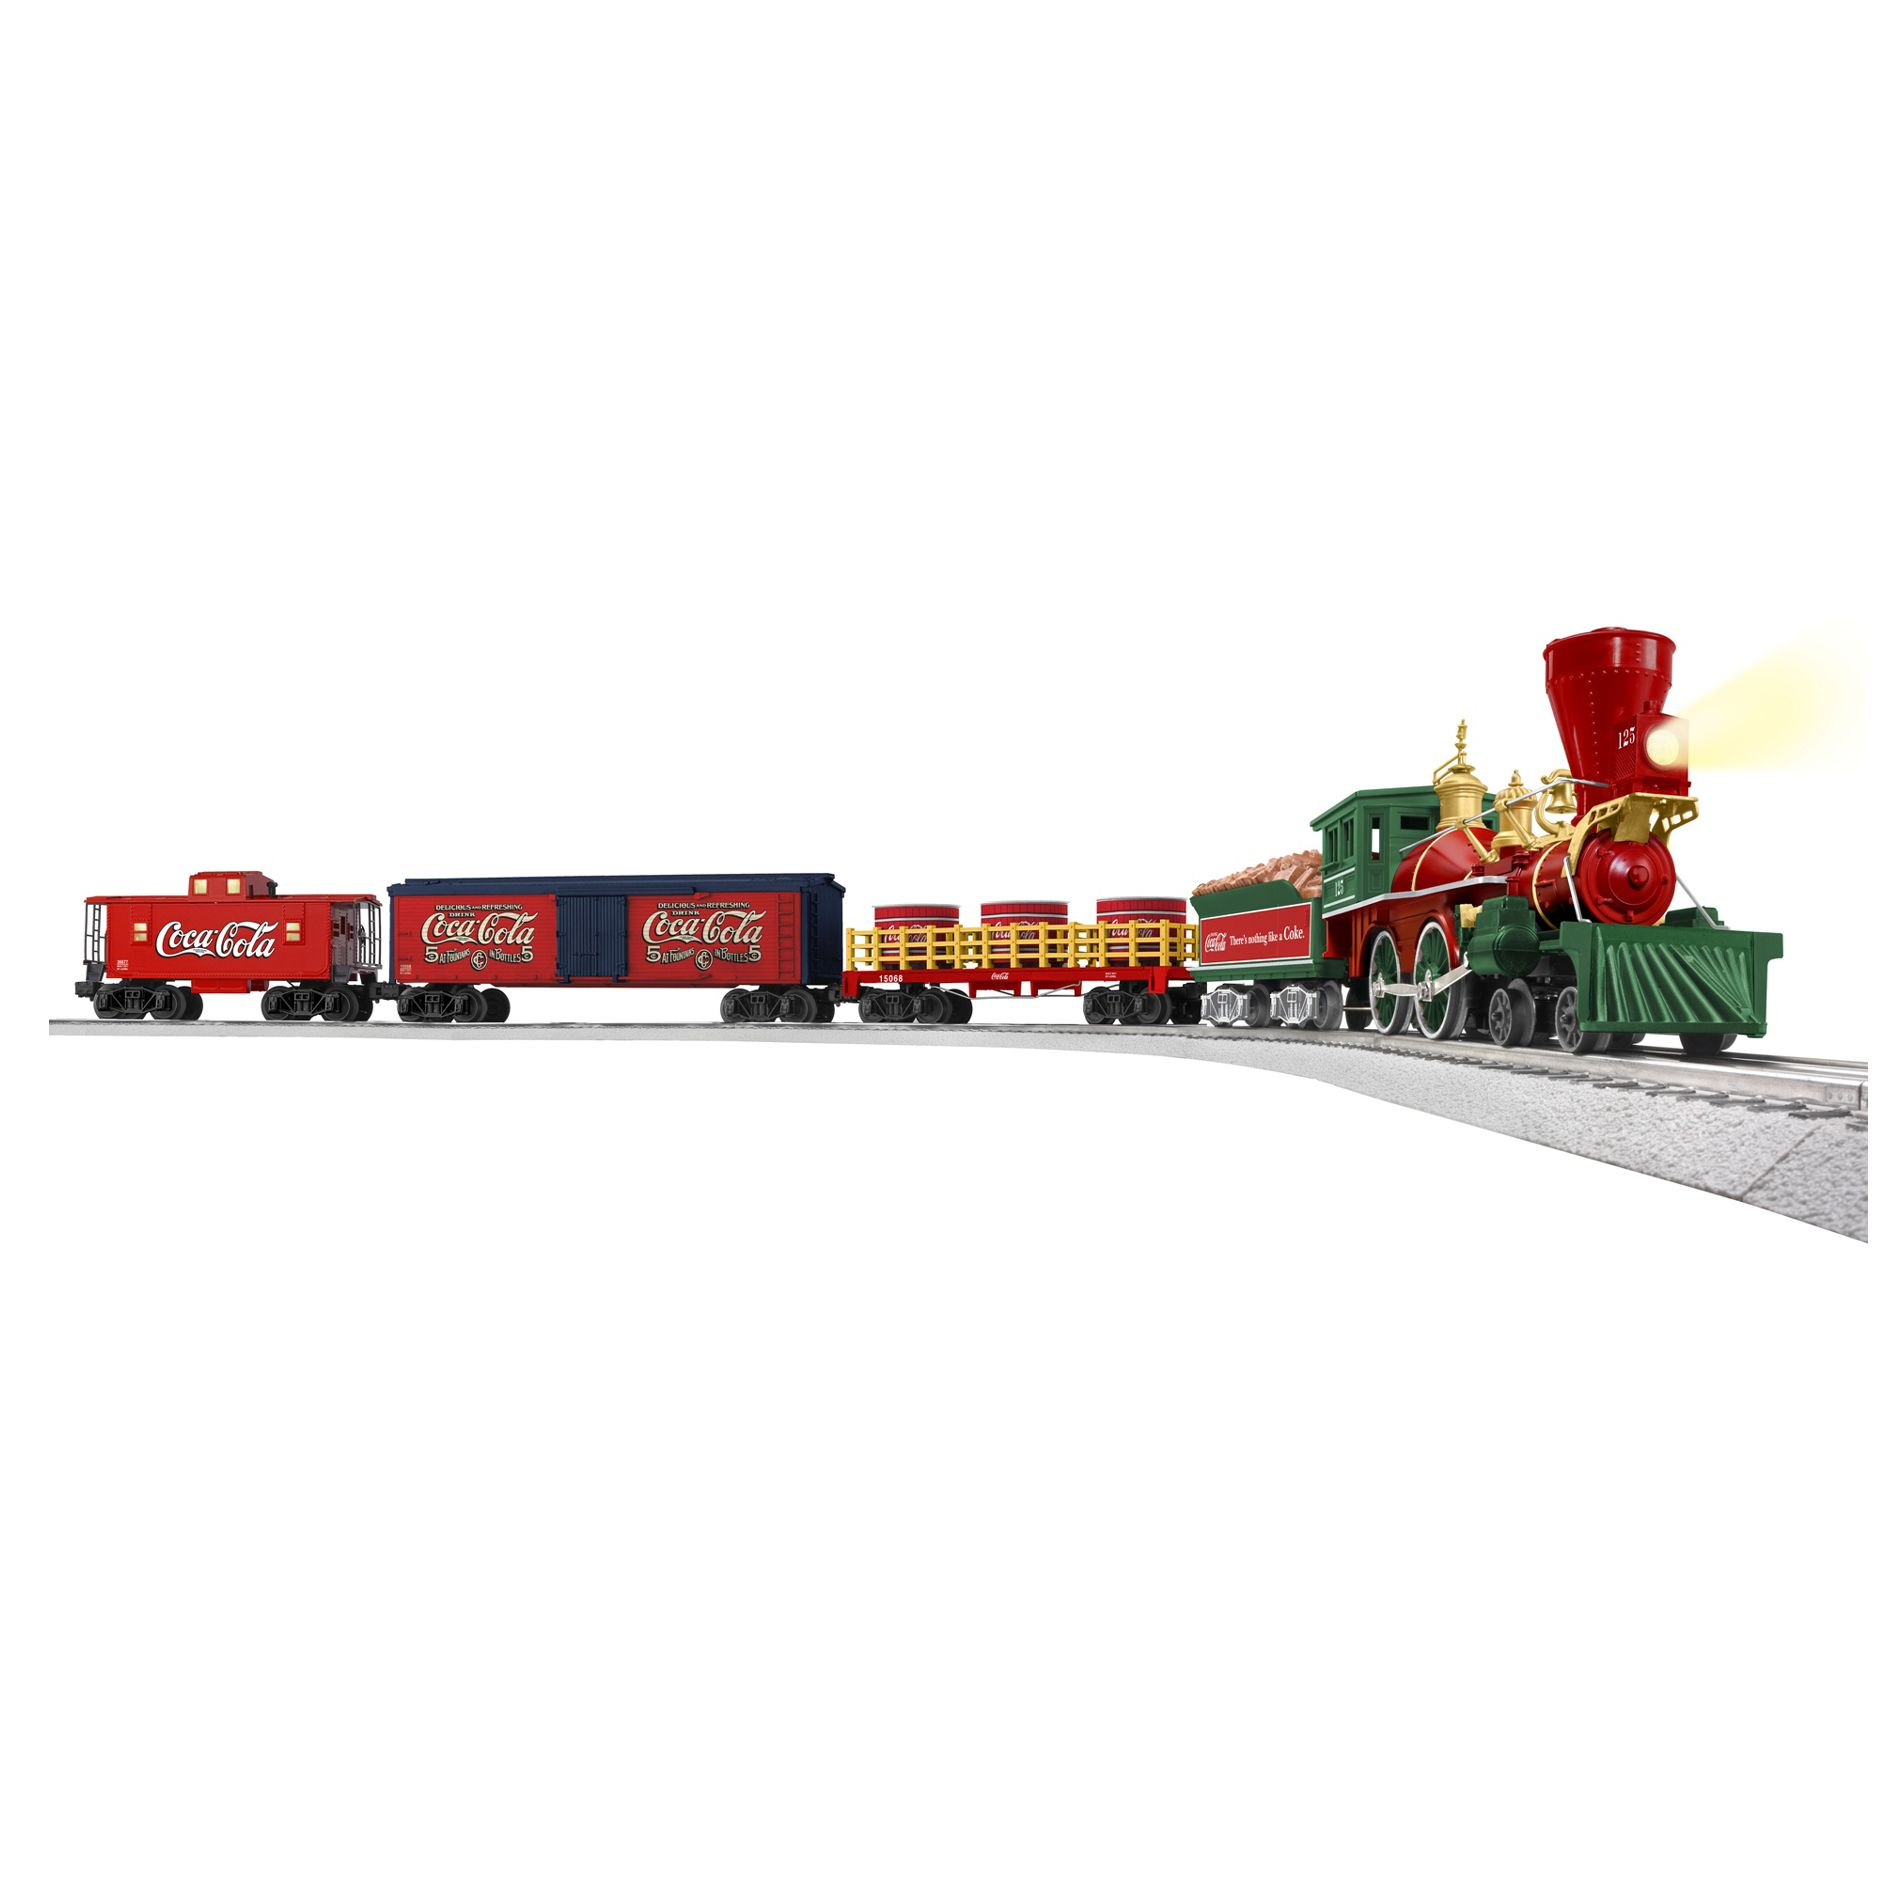 Coca-Cola 125th Anniversary Freight Train Set